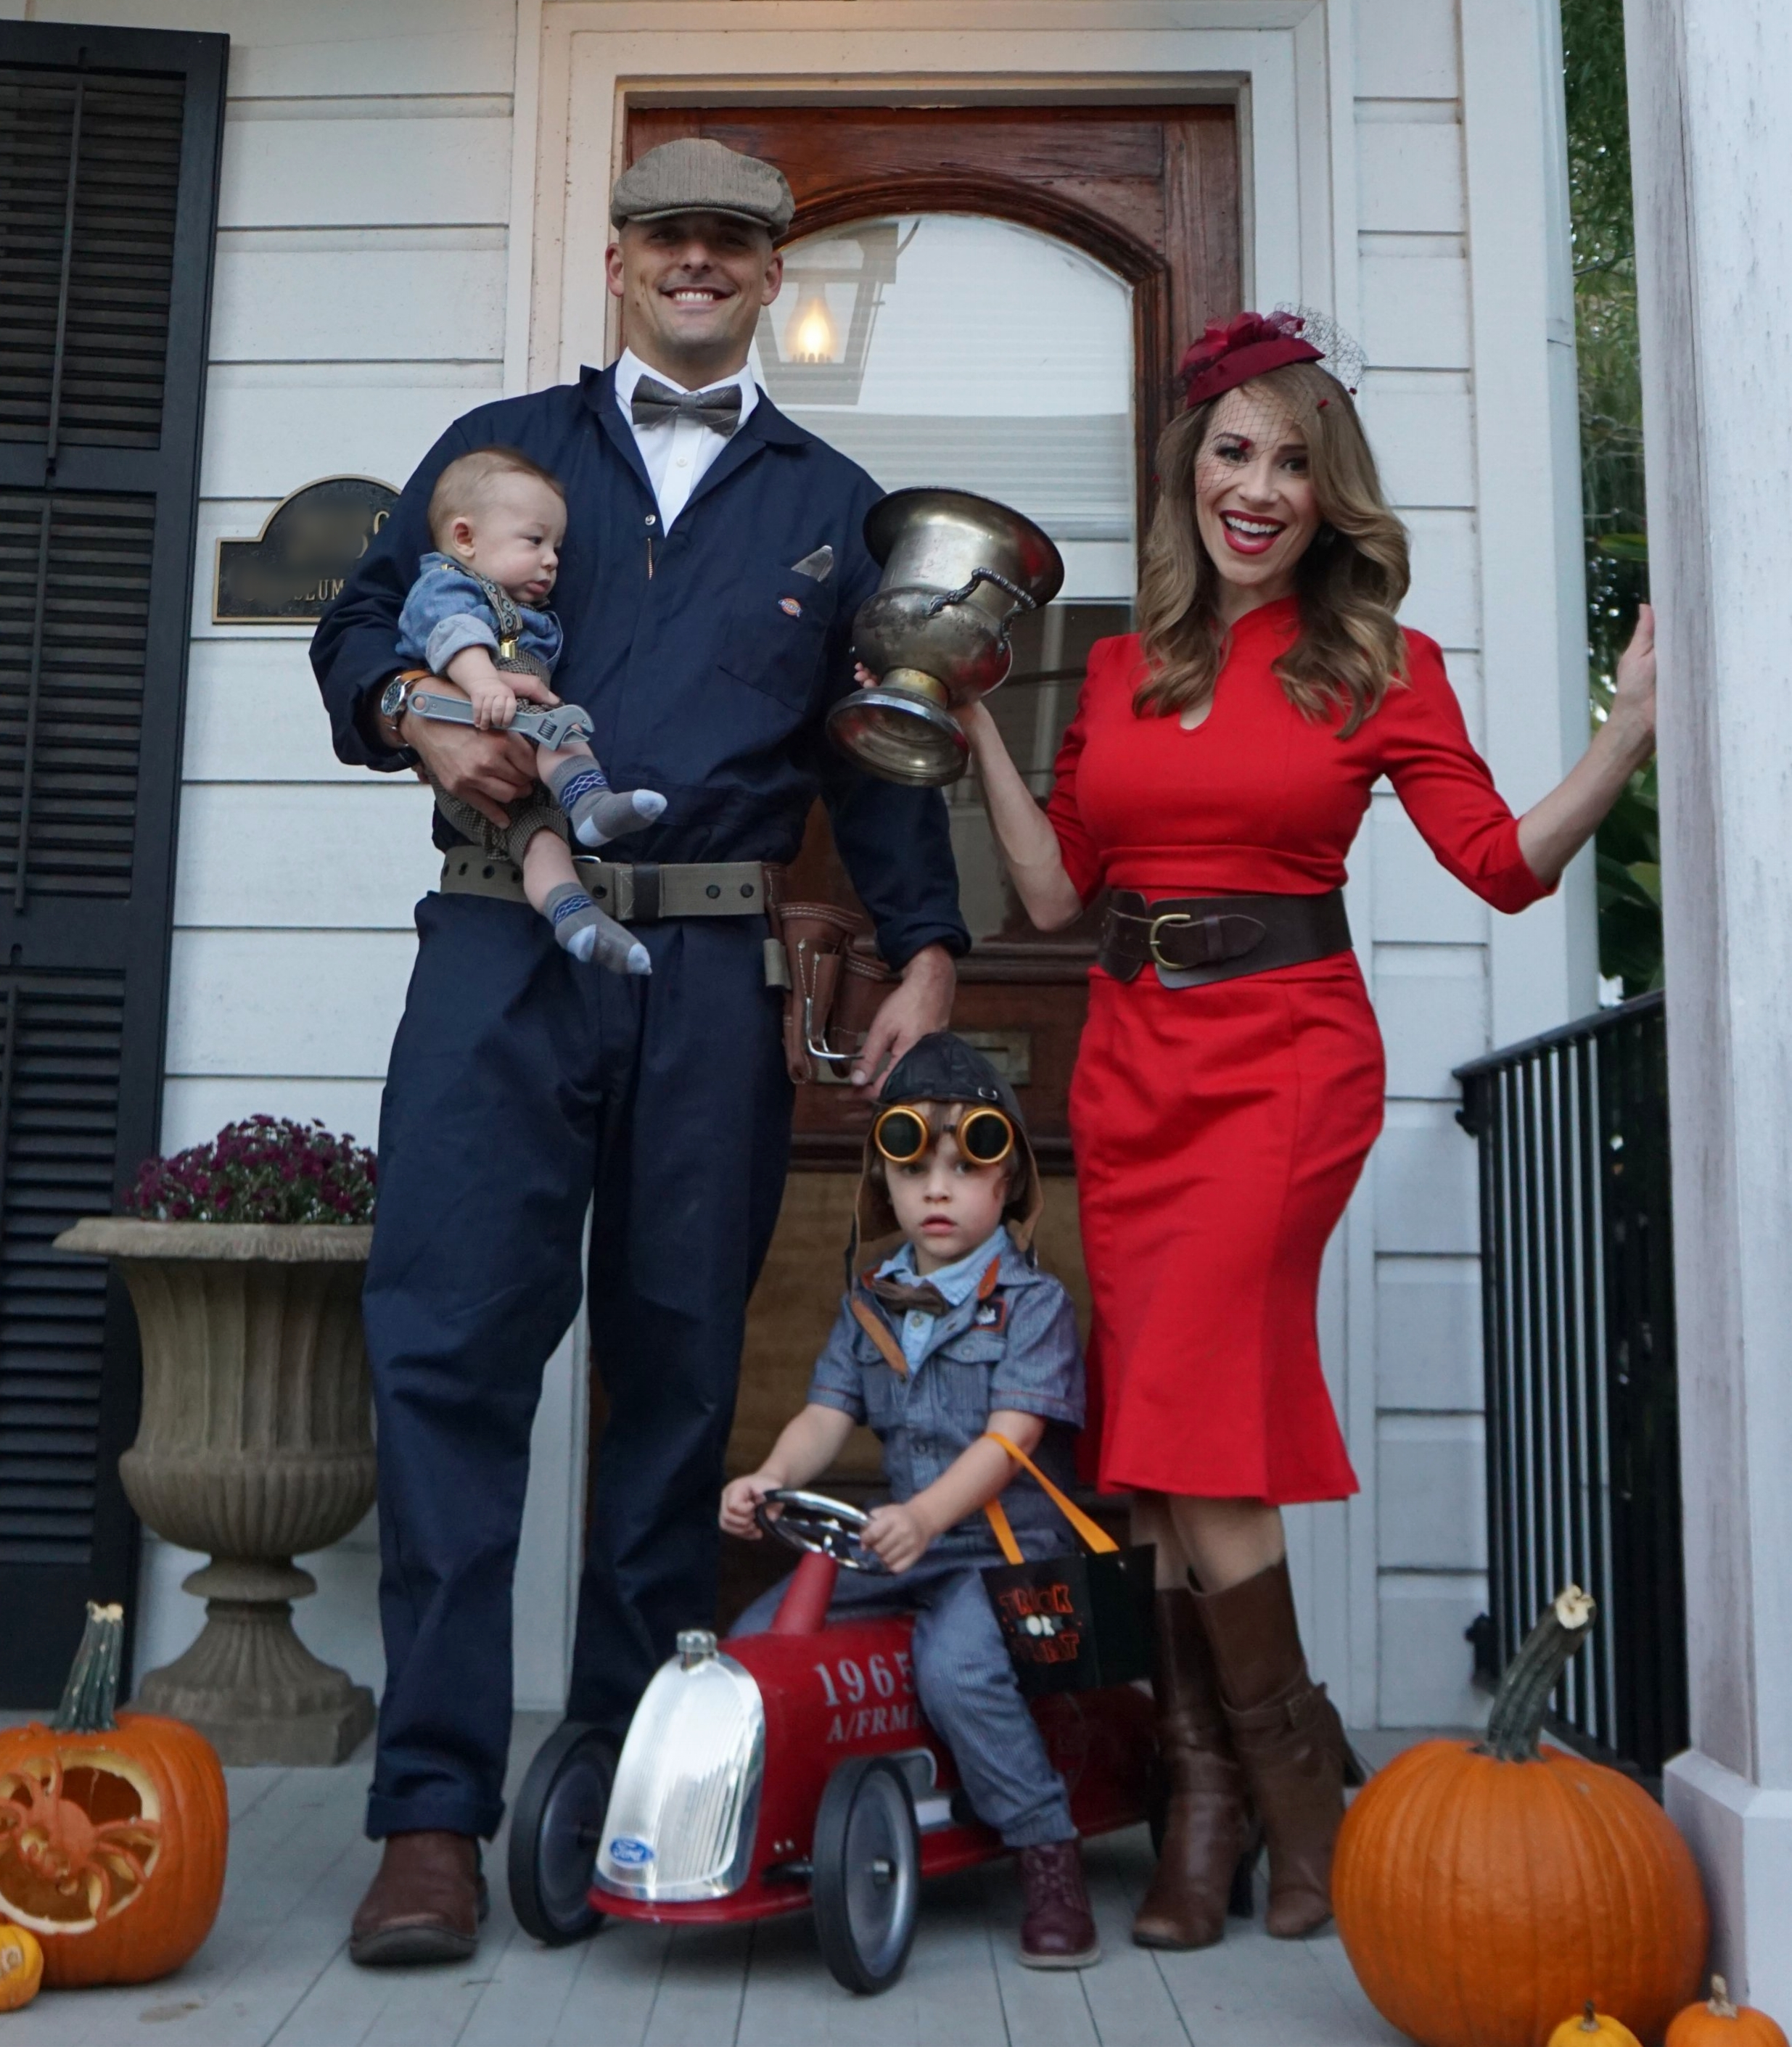 Vintage race car driver family costume.JPG